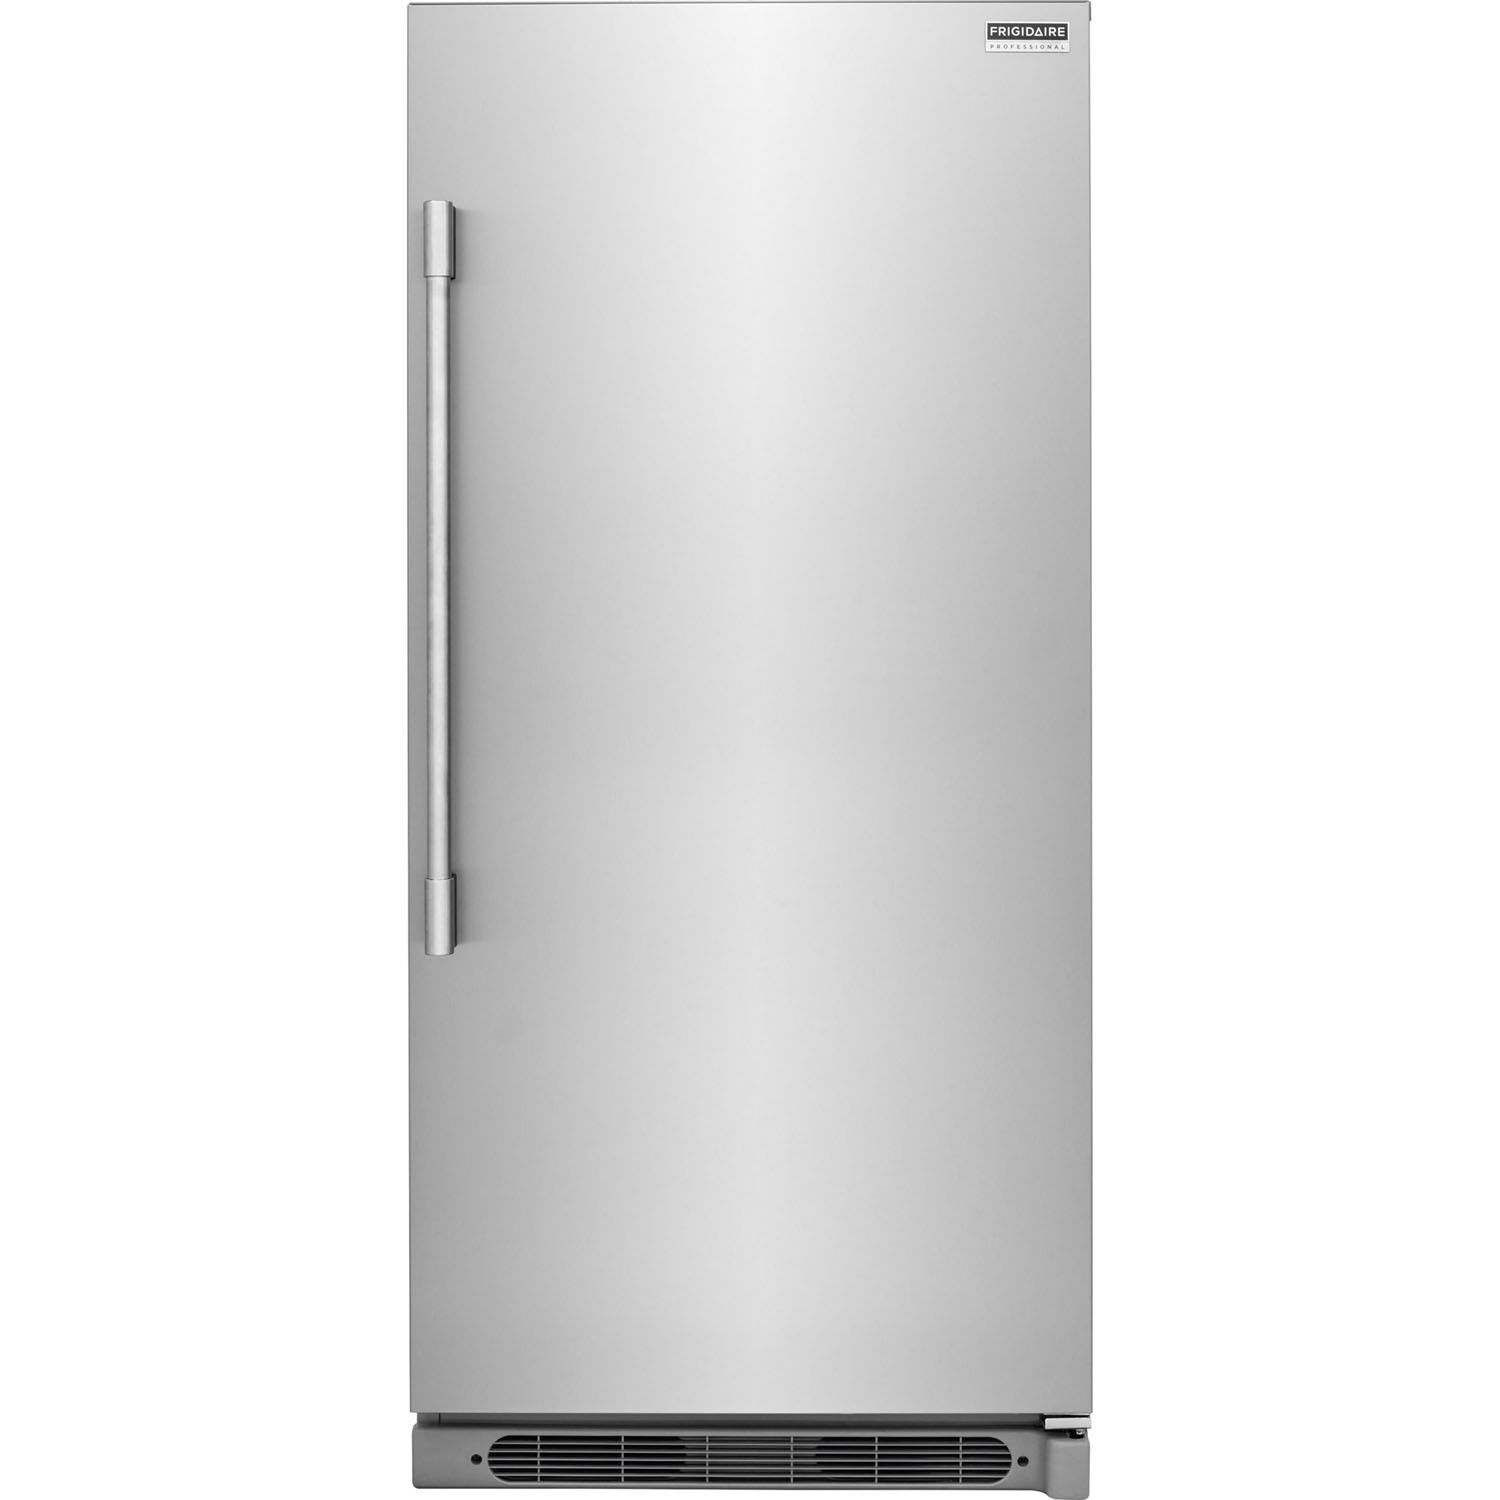 Frigidaire PROFESSIONAL Stainless Steel All Refrigerator FPR